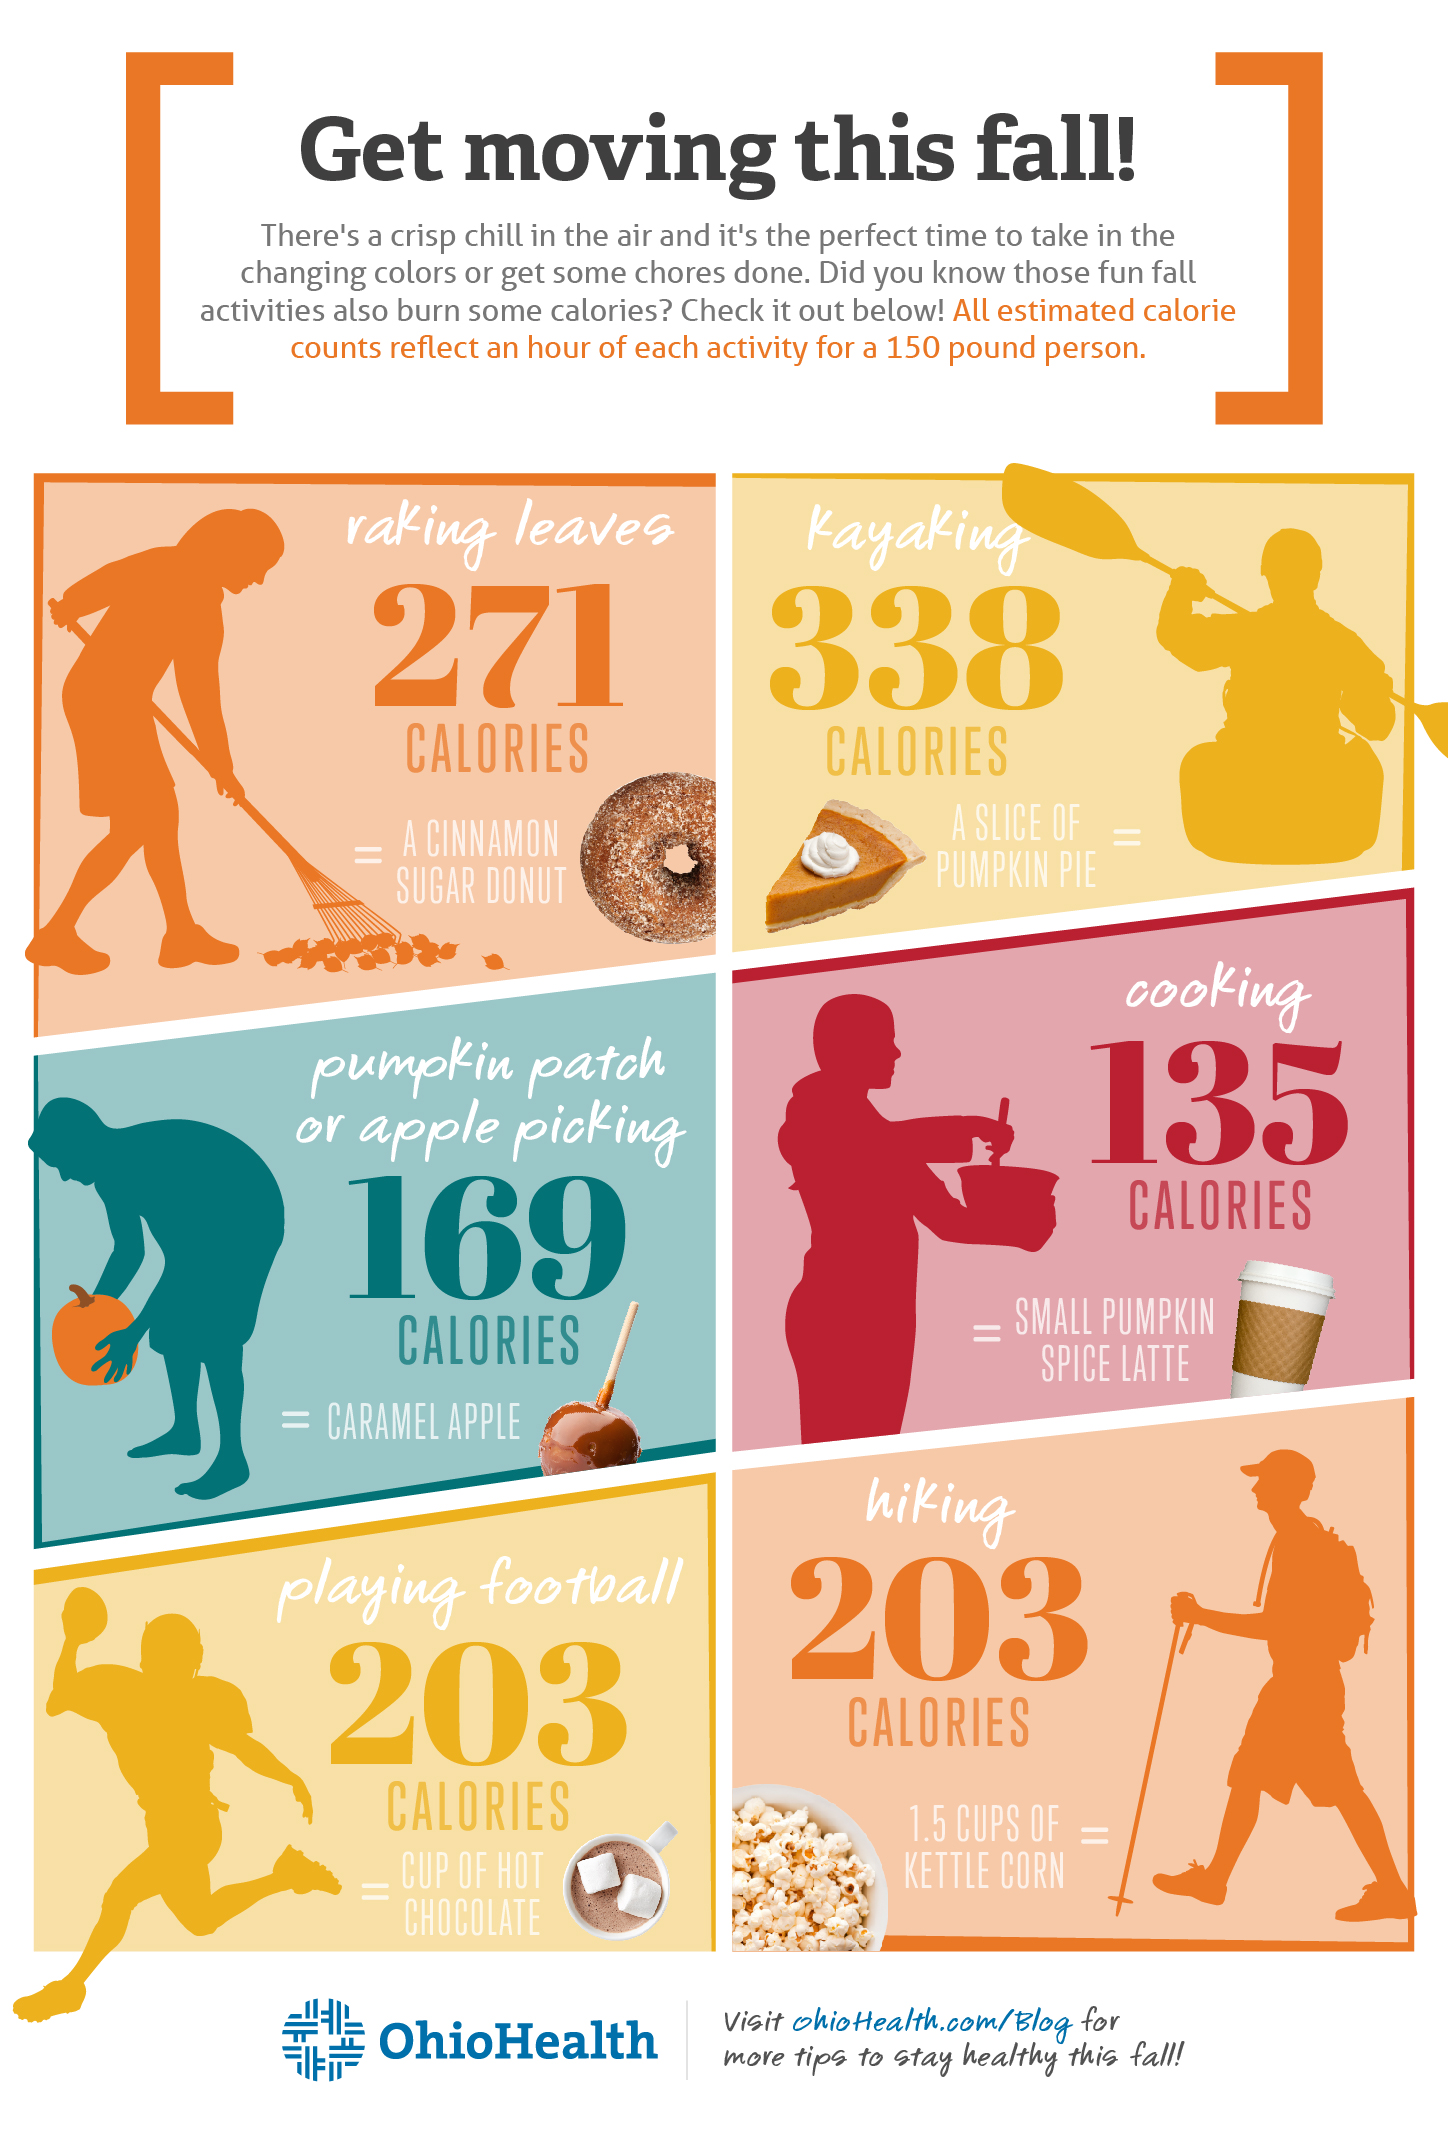 Infographic describing how many calories are burned by performing different fall activities